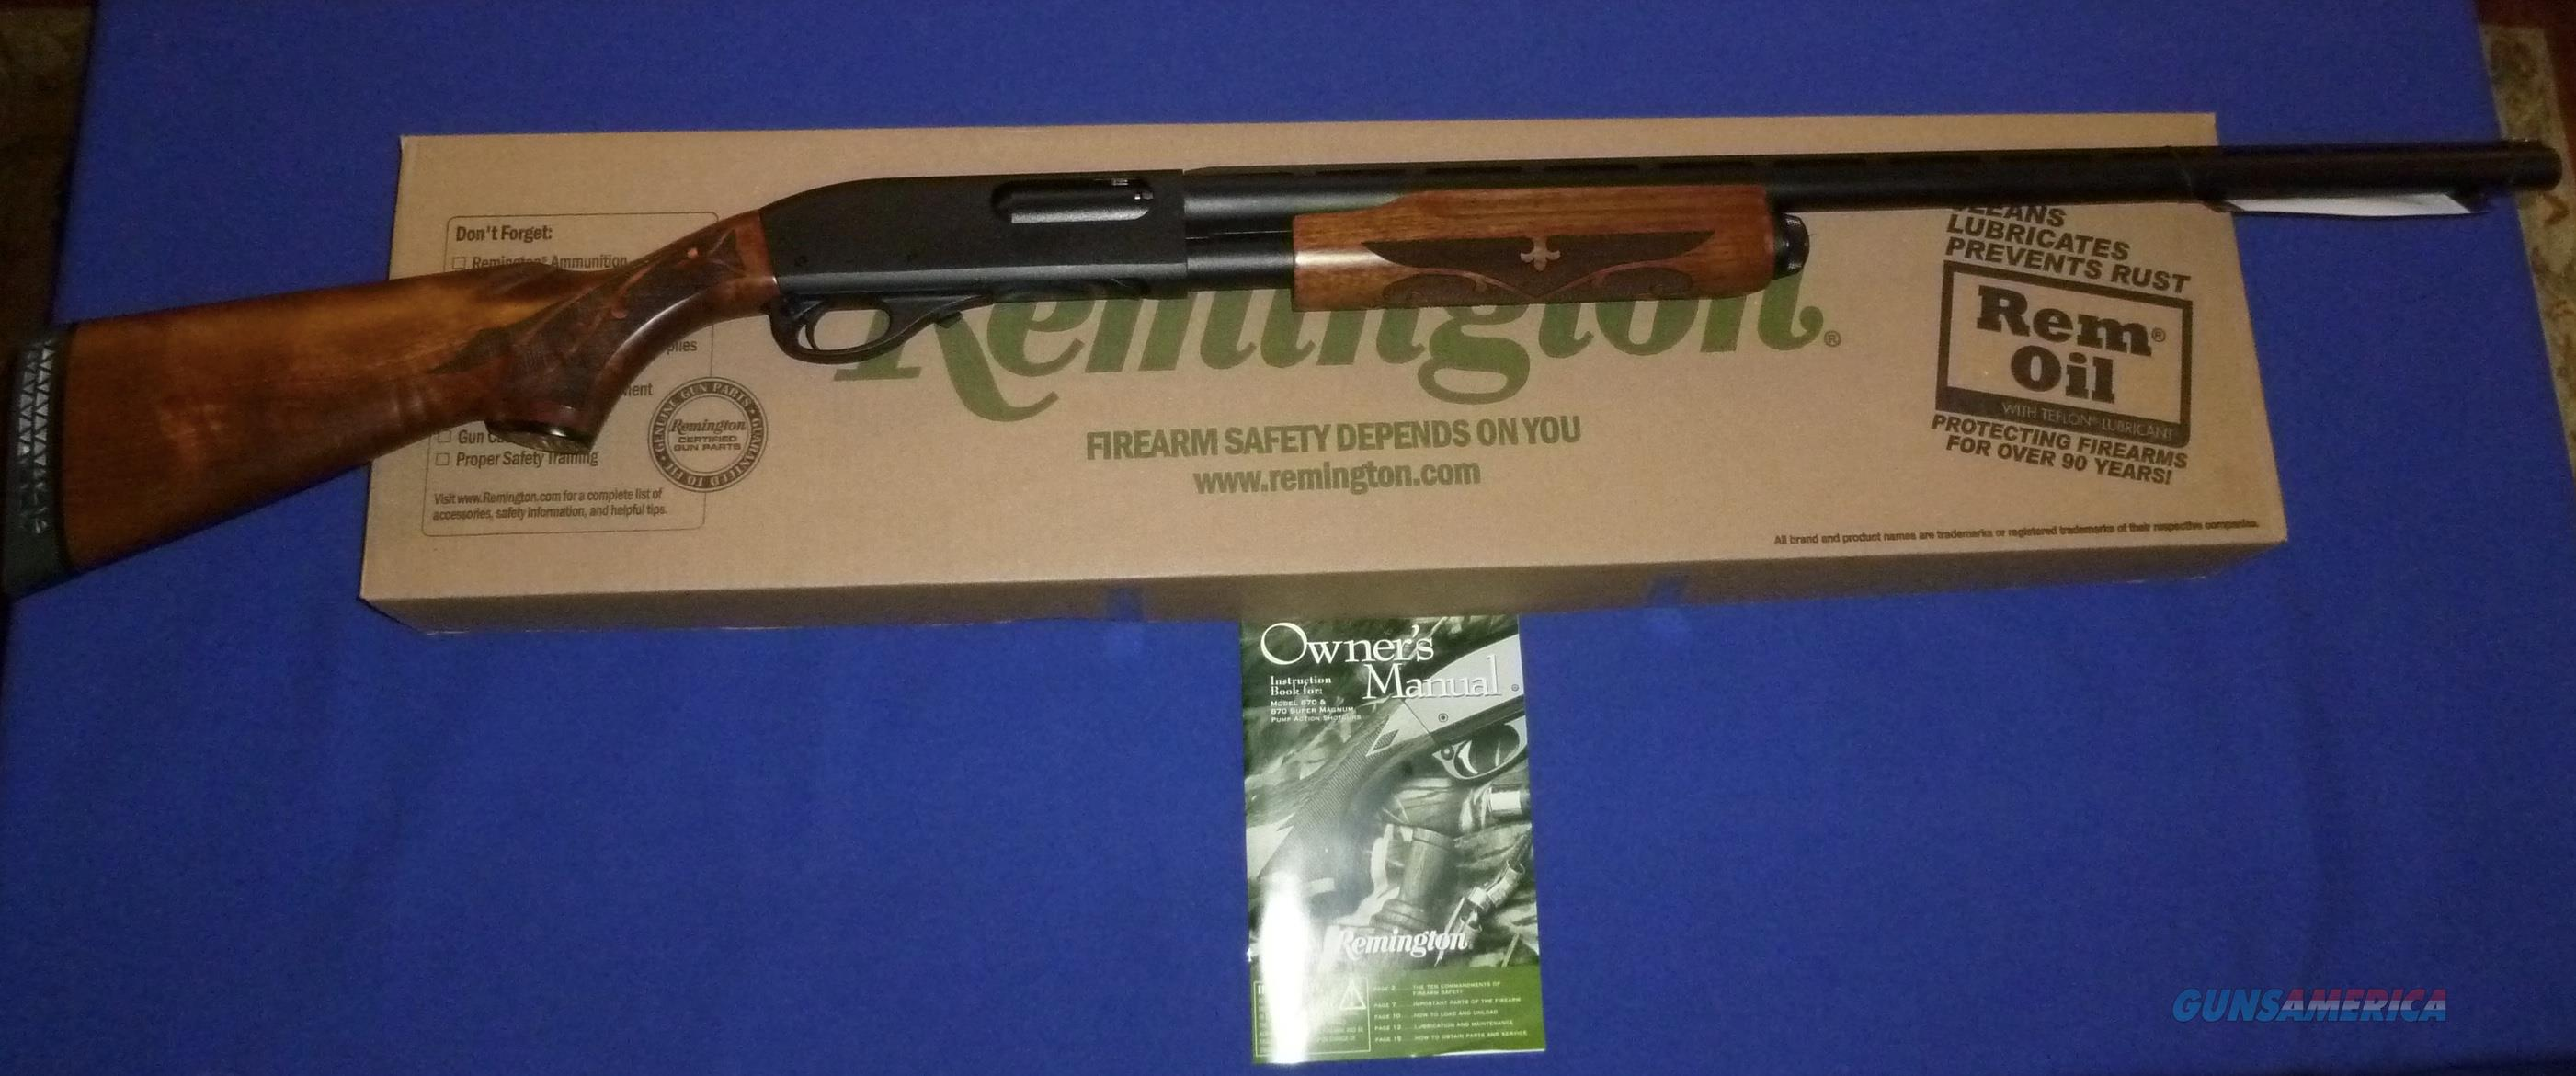 REMINGTON 870 EXPRESS 200TH YEAR ANNIVERSARY EDITION 12 GAUGE PUMP SHOTGUN  Guns > Shotguns > Remington Shotguns  > Pump > Hunting